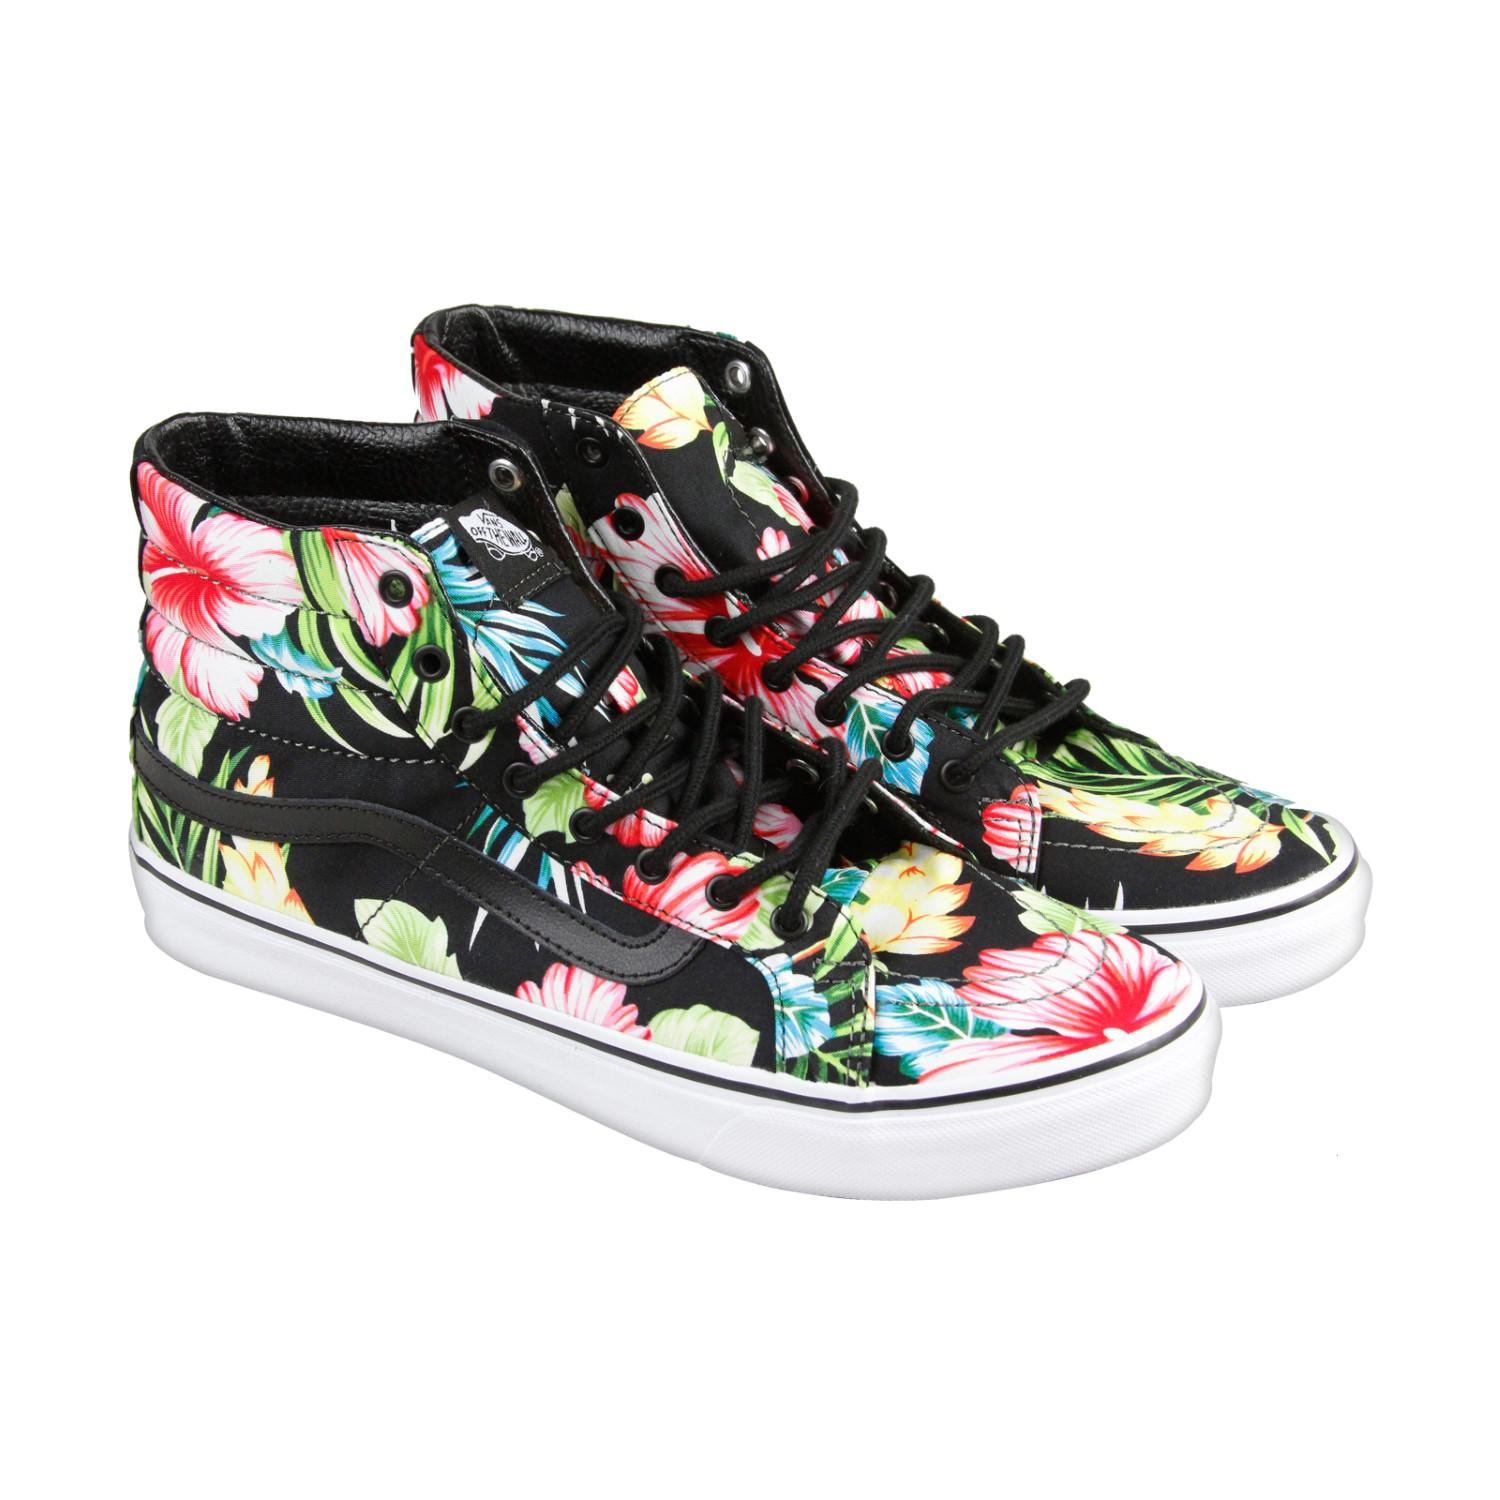 90484a6ca8482 Lyst - Vans Hawaiian Floral Black Mens High Top Sneakers in Black ...